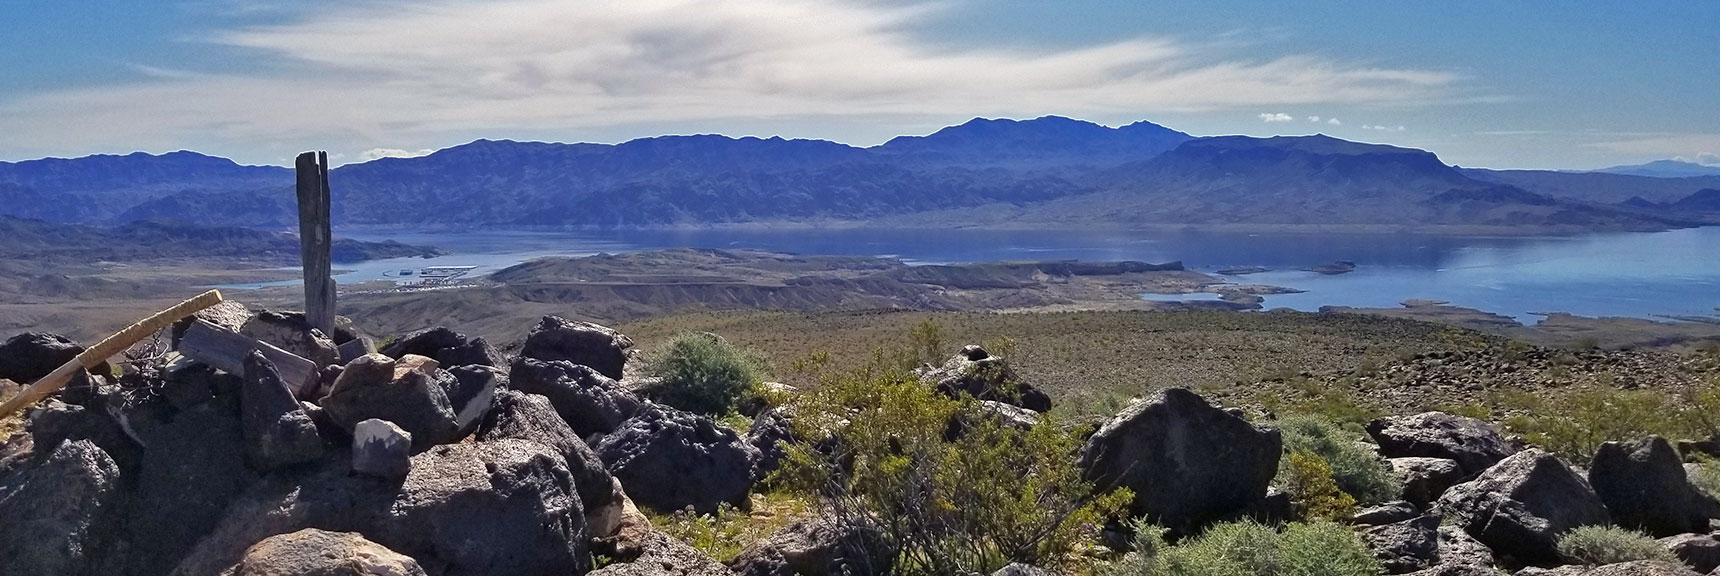 View of Lake Mead from Black Mesa in Lake Mead National Recreation Area, Nevada